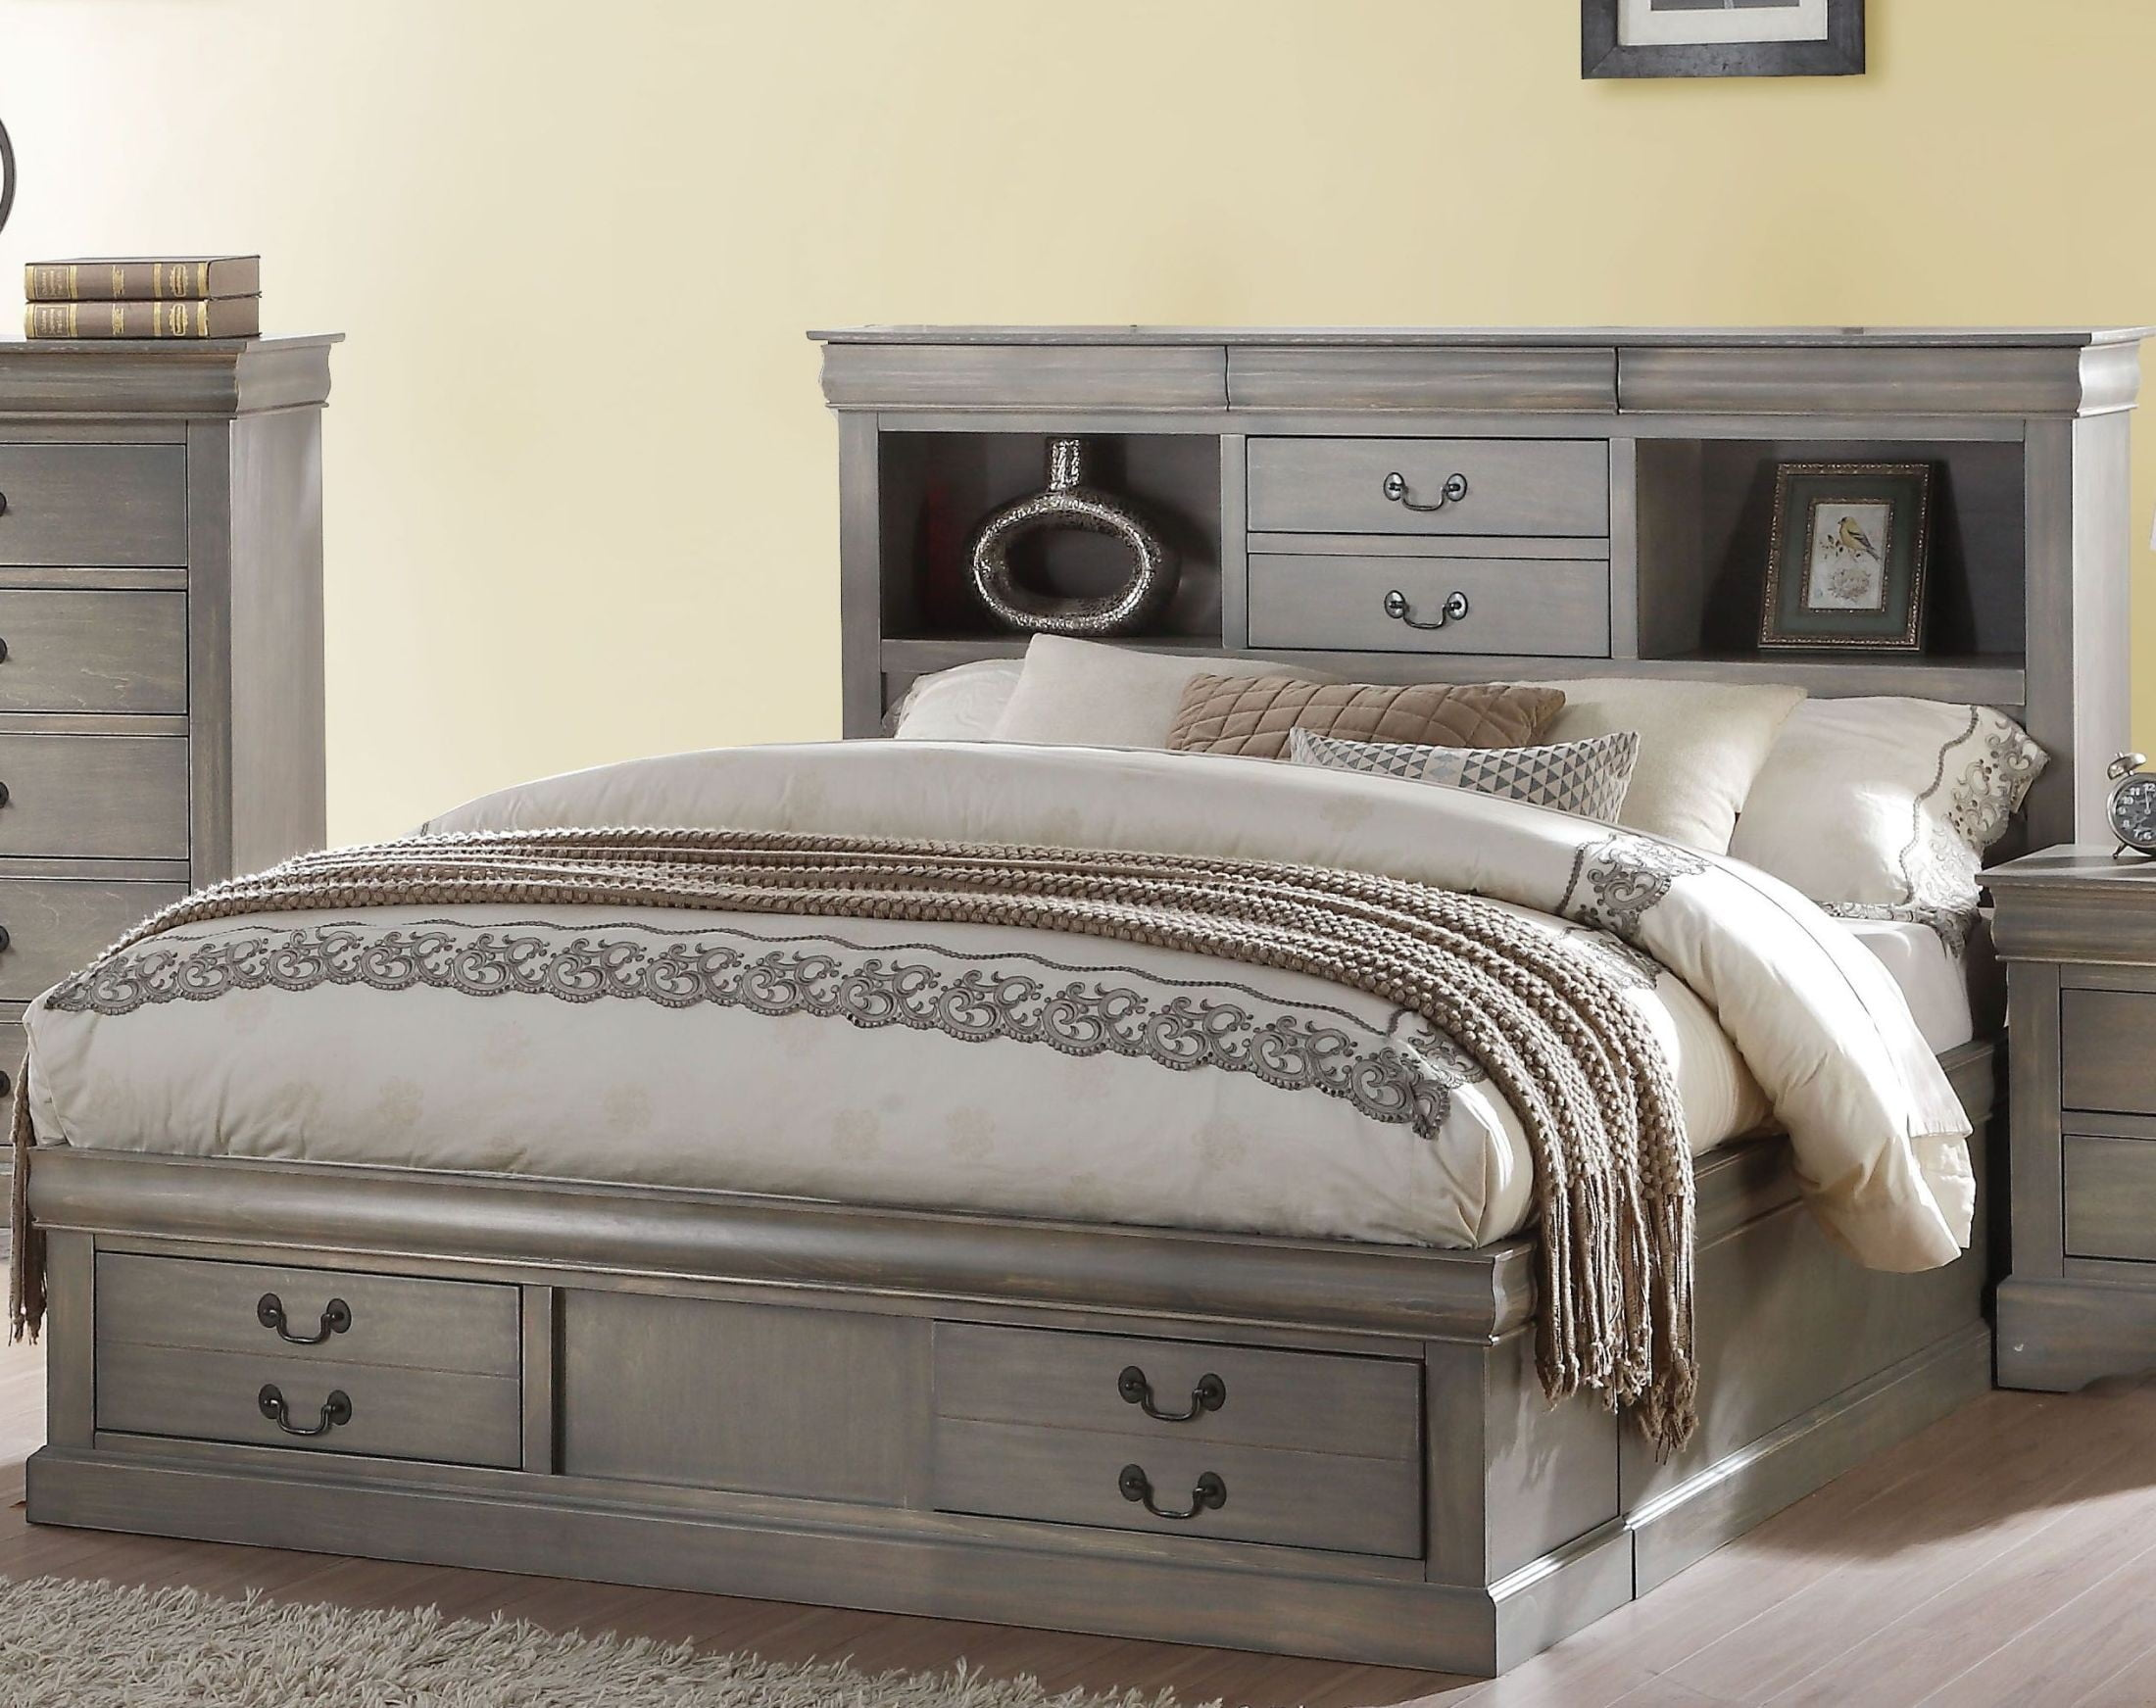 Acme Louis Philippe Queen Size Bed Antique Gray